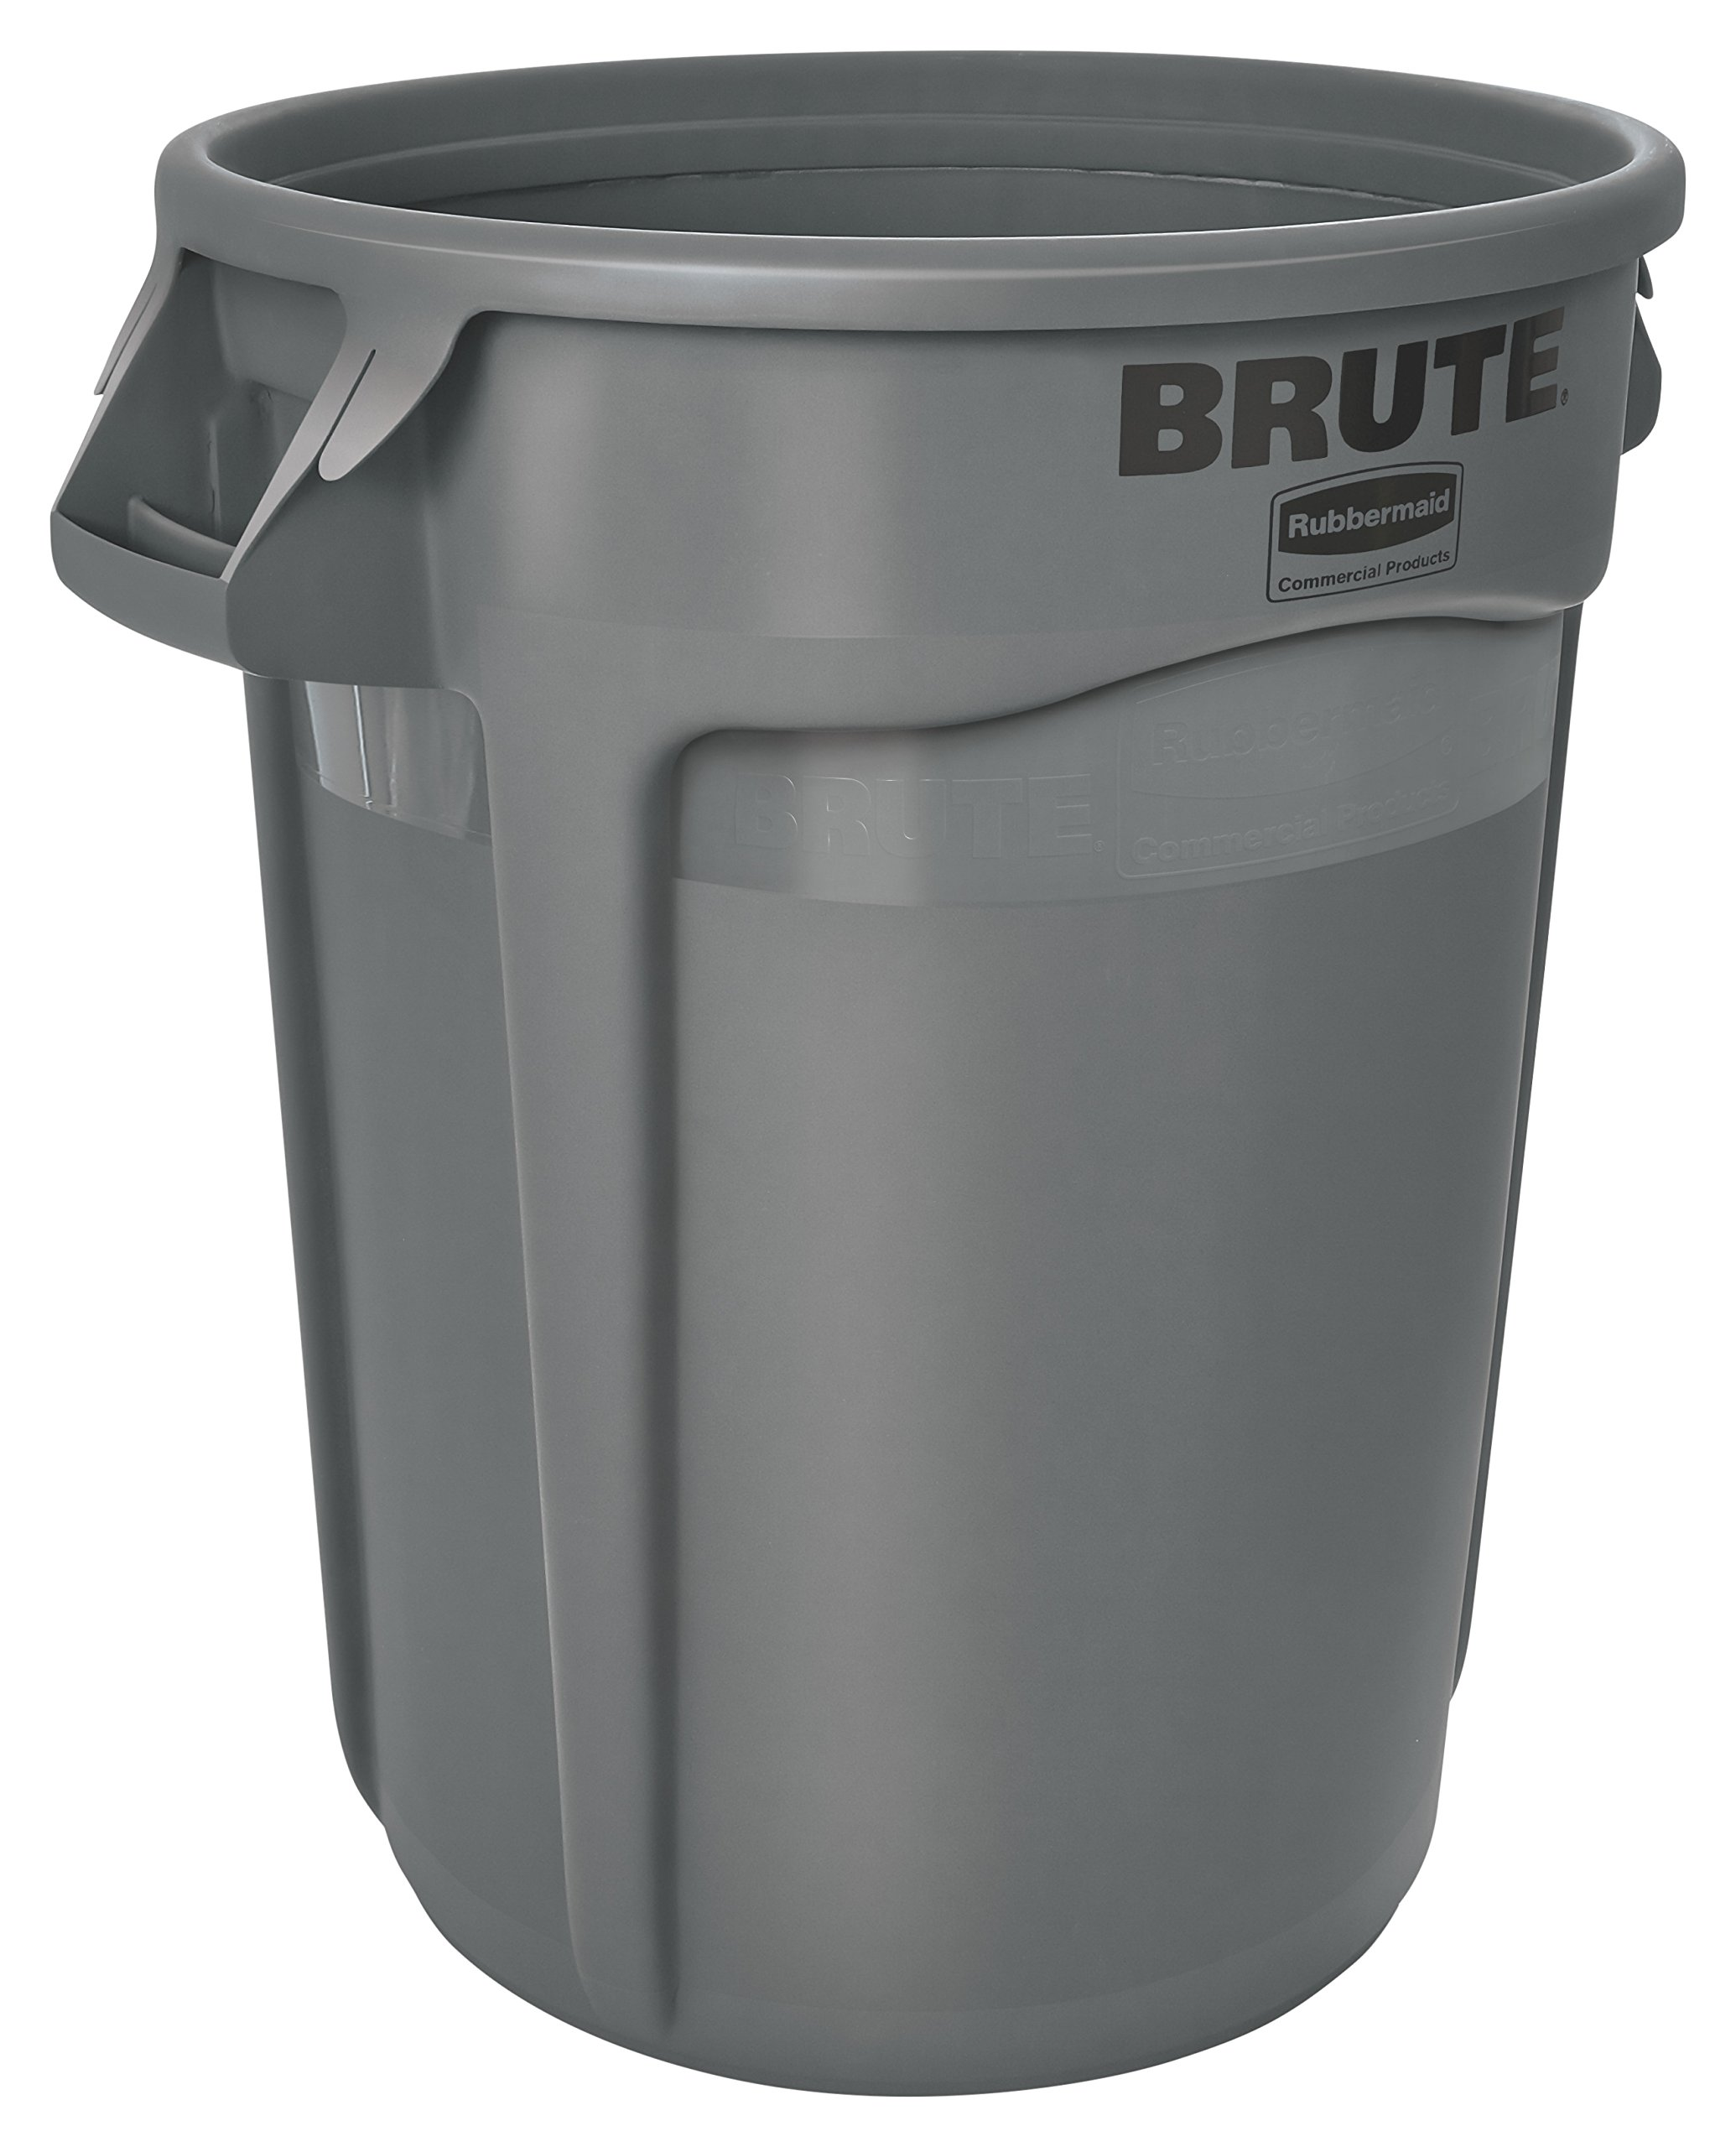 Rubbermaid Commercial BRUTE Heavy-Duty Round Waste/Utility Container with Venting Channels, 10-gallon, Gray (FG261000GRAY) by Rubbermaid Commercial Products